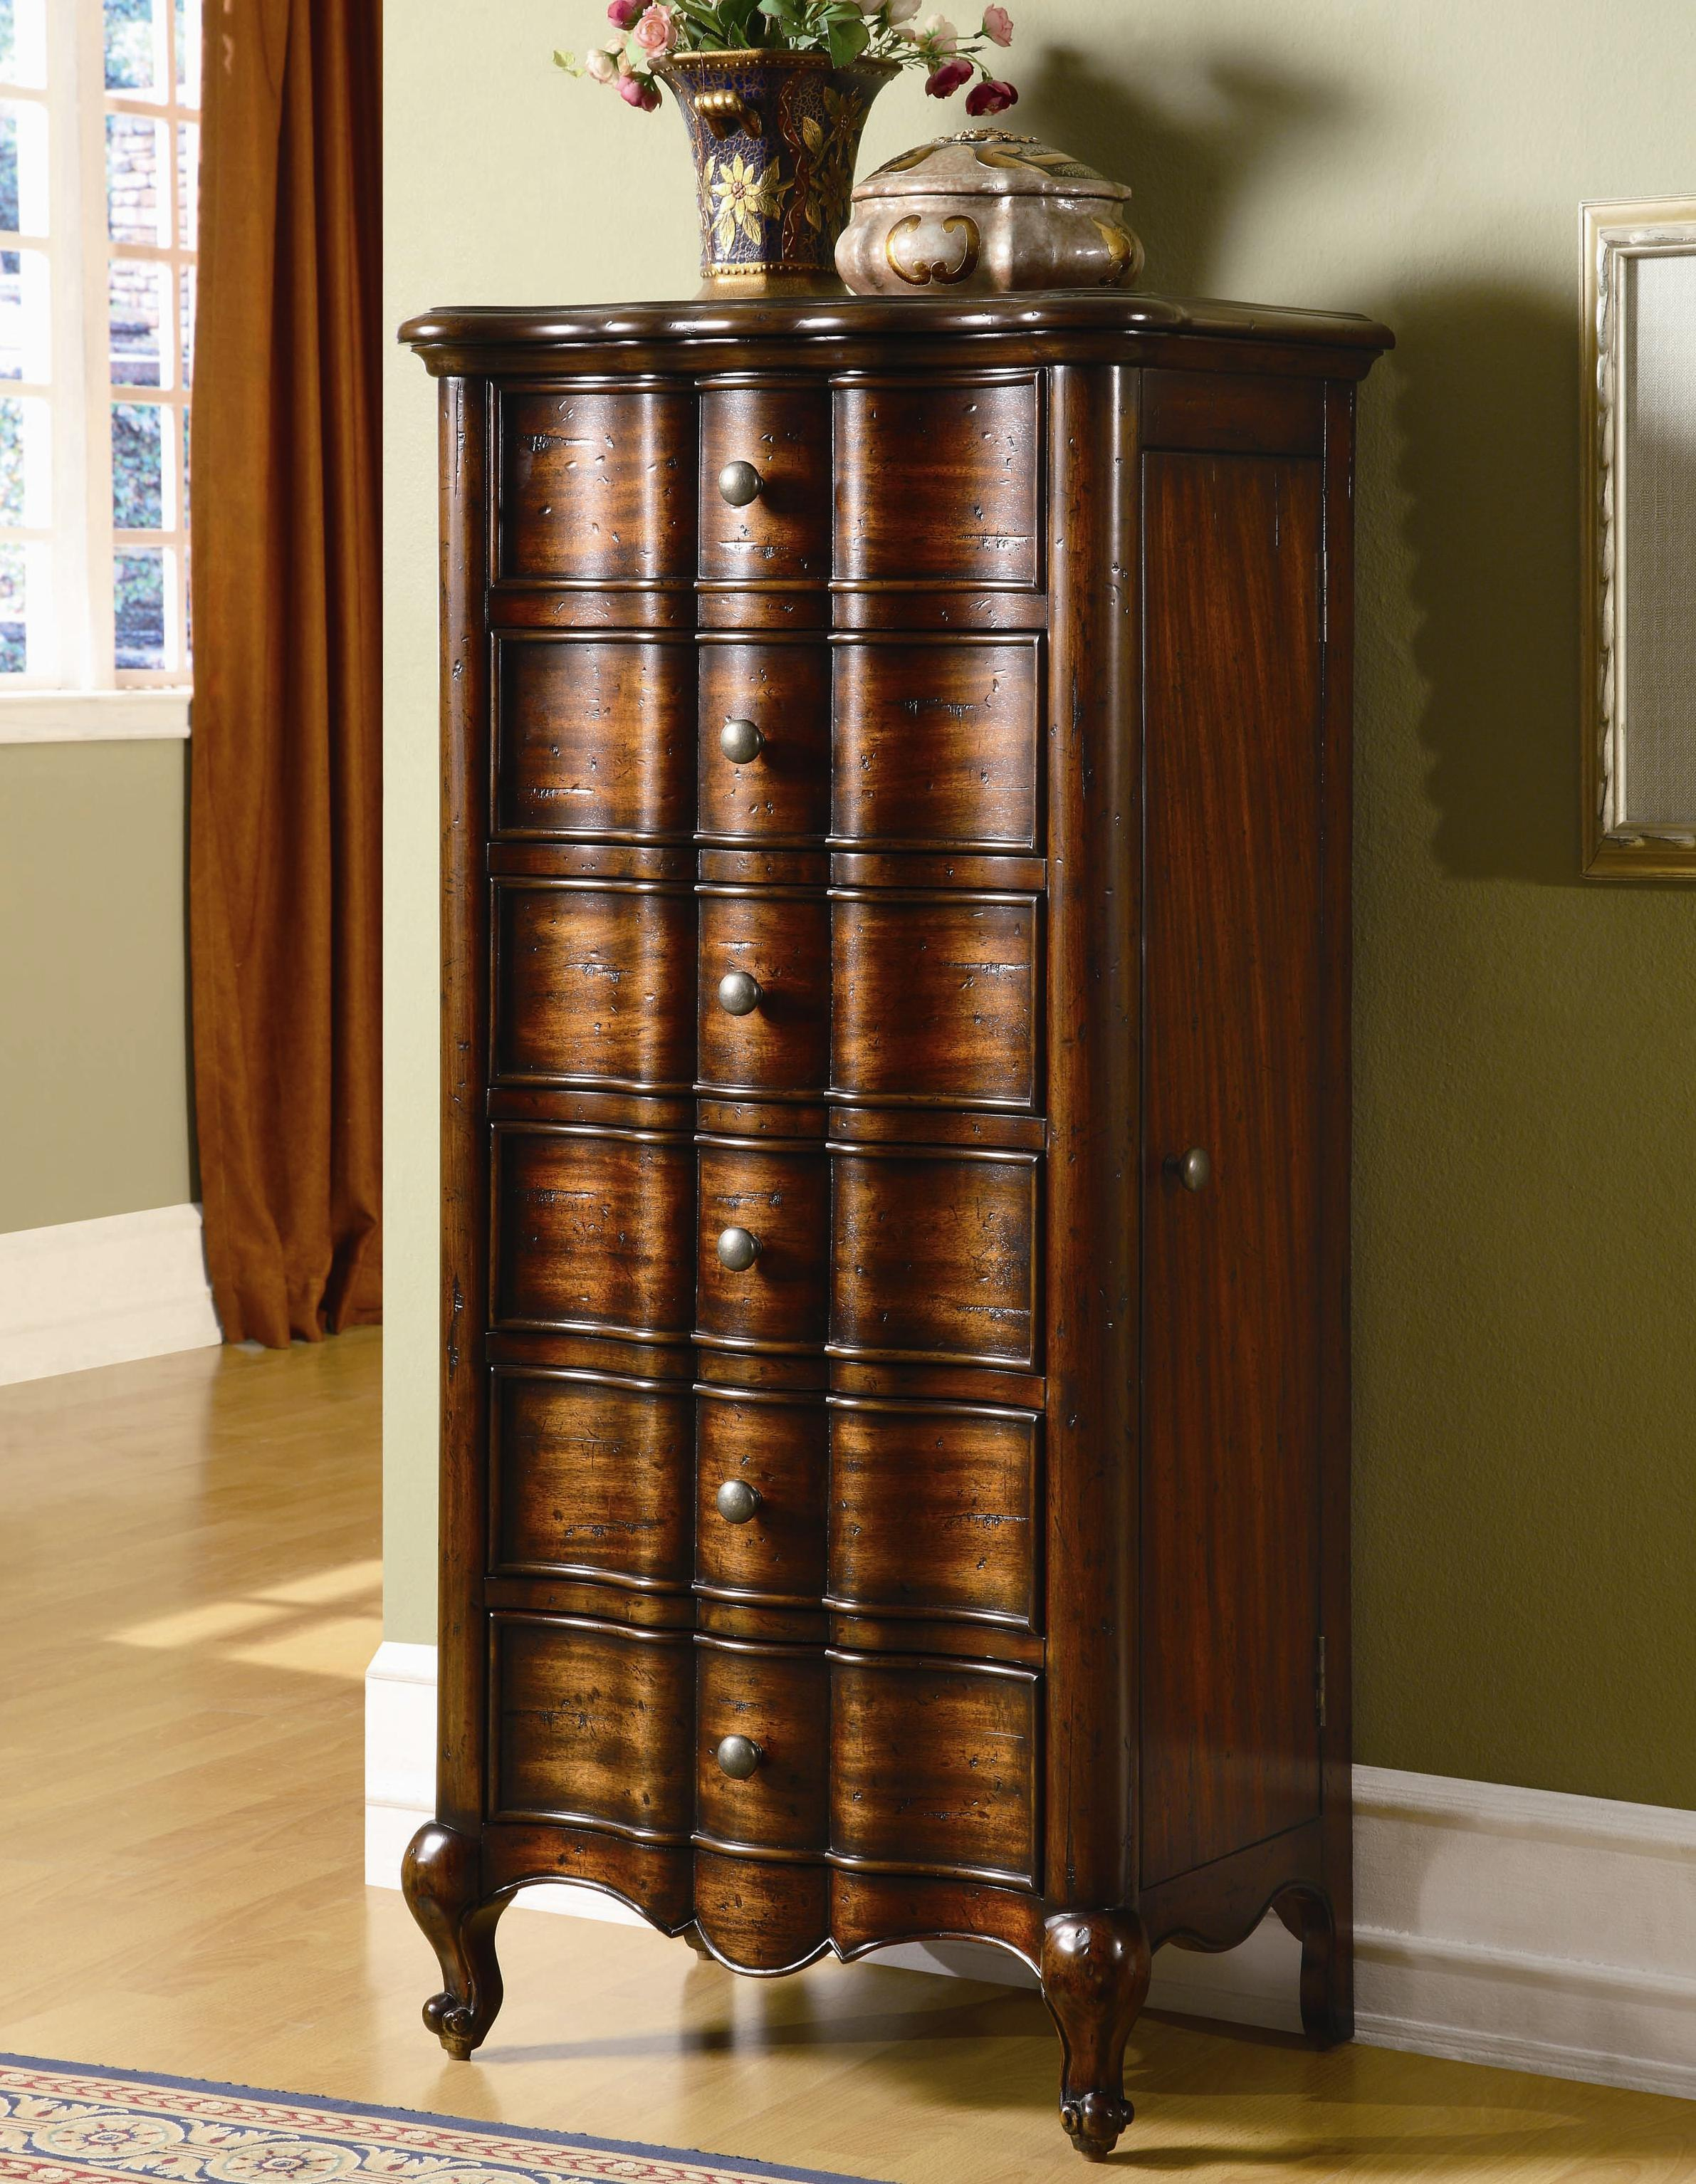 Hooker Furniture Seven Seas French Jewelry Armoire | Reeds ...